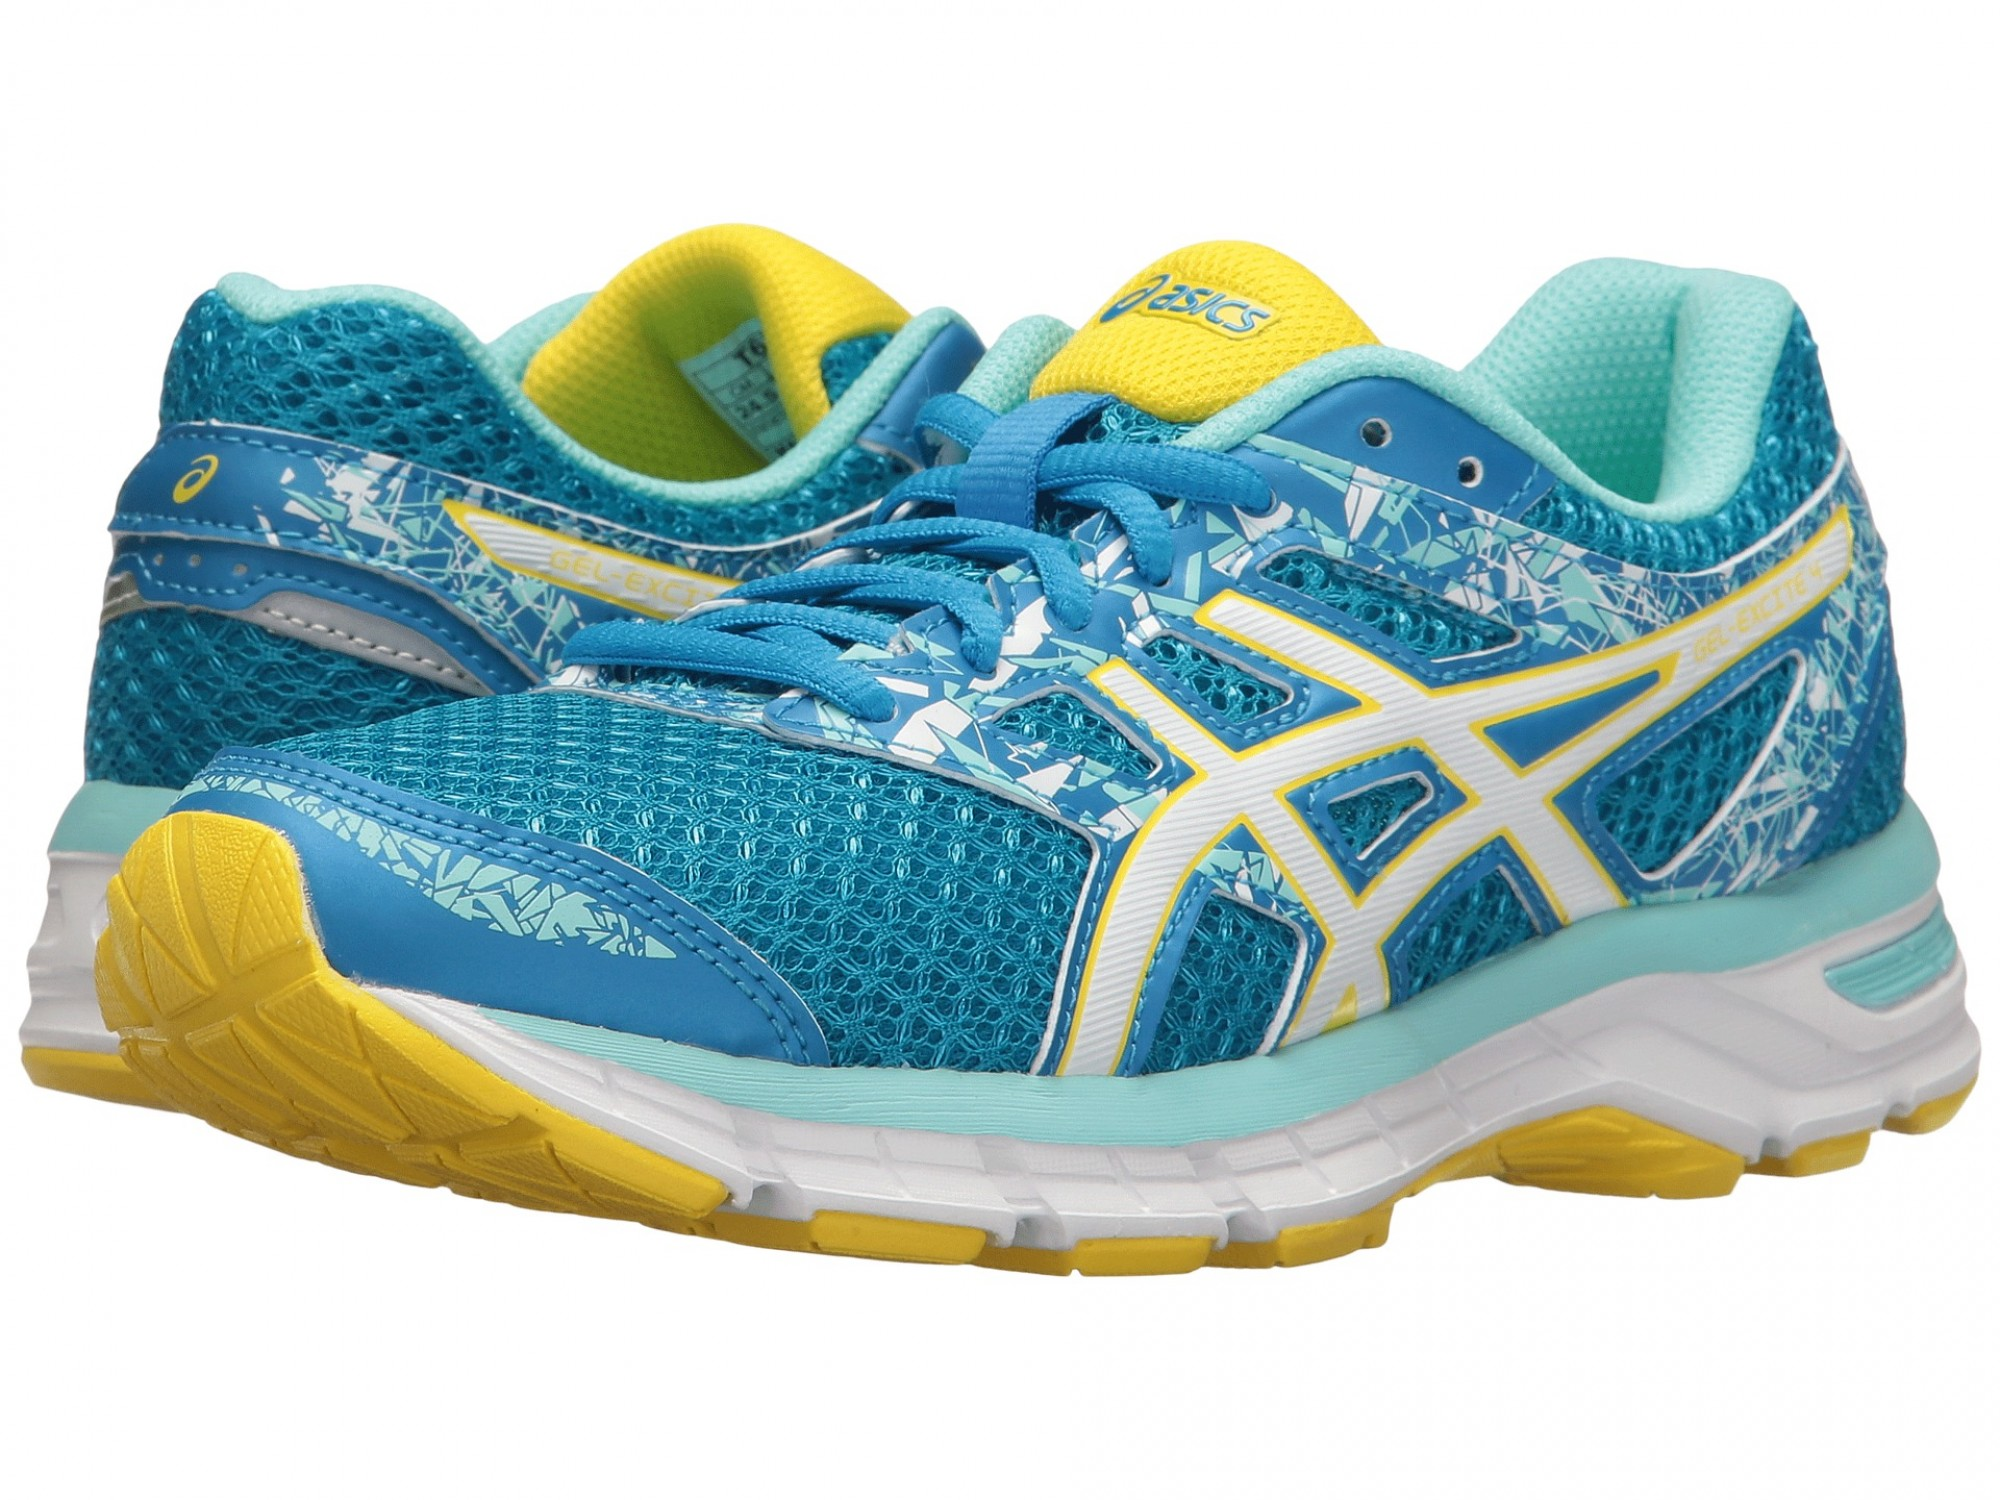 998aba2755d2 Женские ASICS GEL-Excite 4 (Diva Blue White Sun) T6E8N-4301 - купить ...